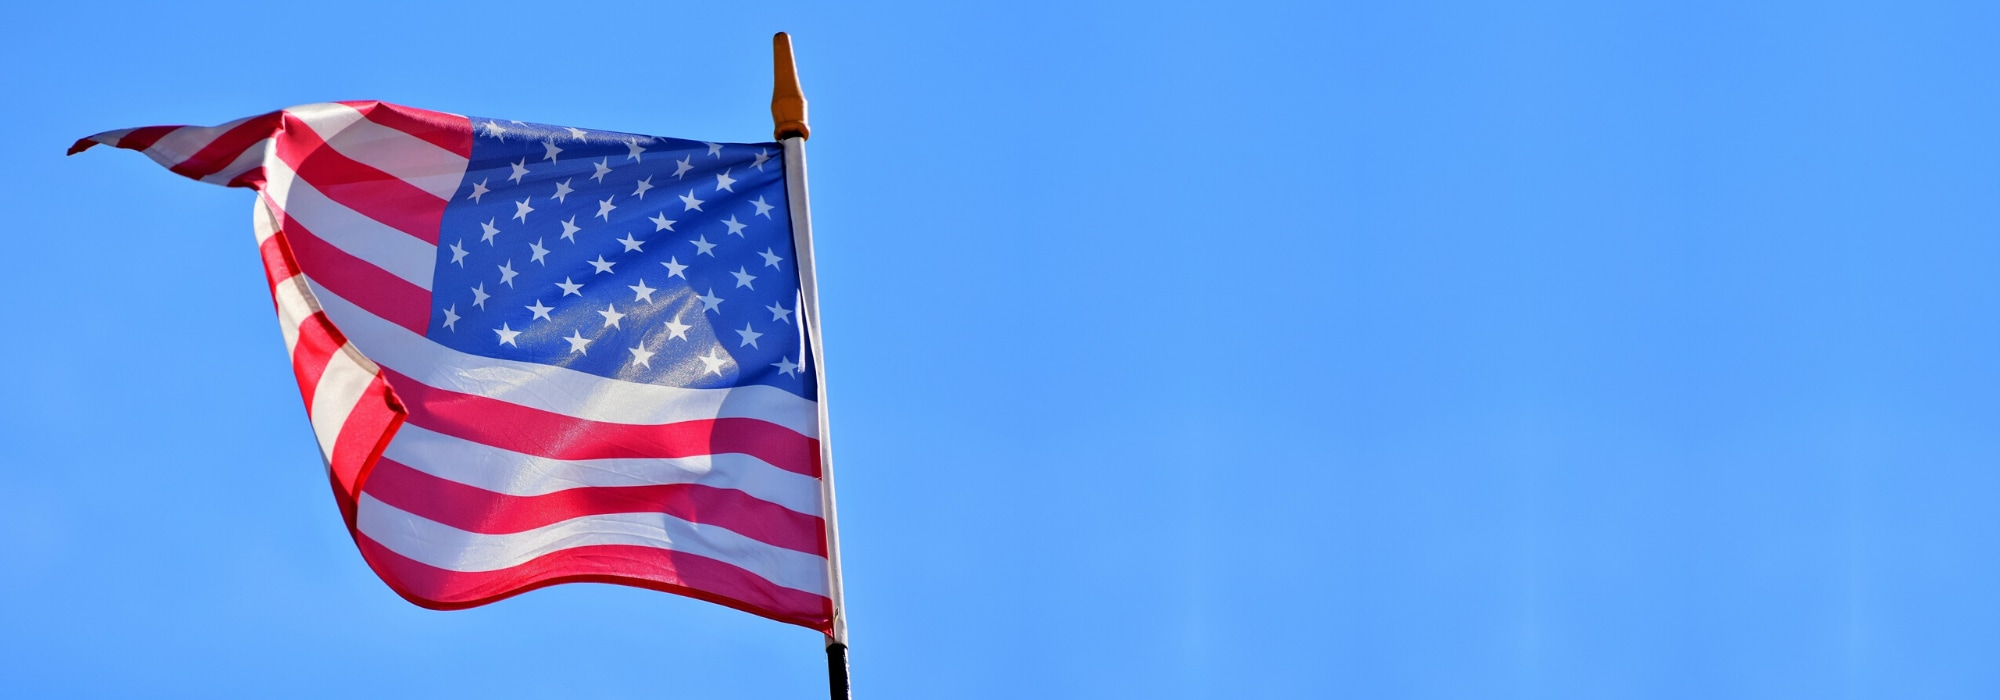 American Flag blowing in the wind blue sky behind